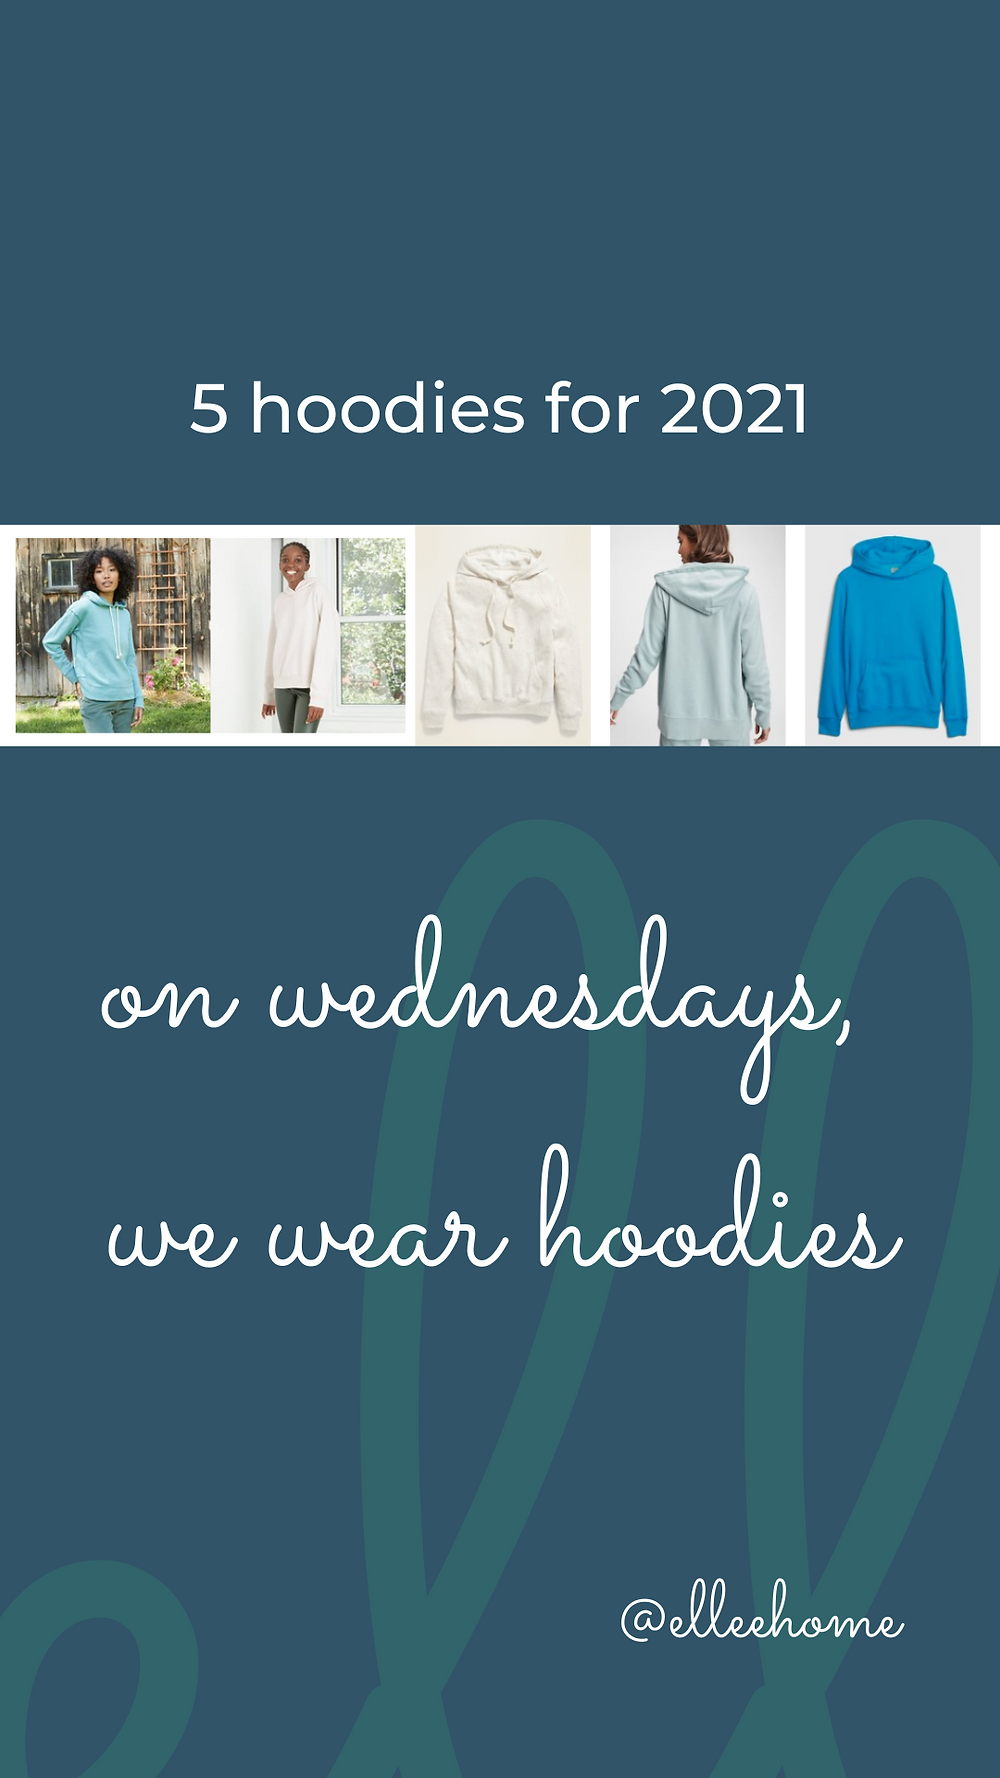 5 hoodies for 2021